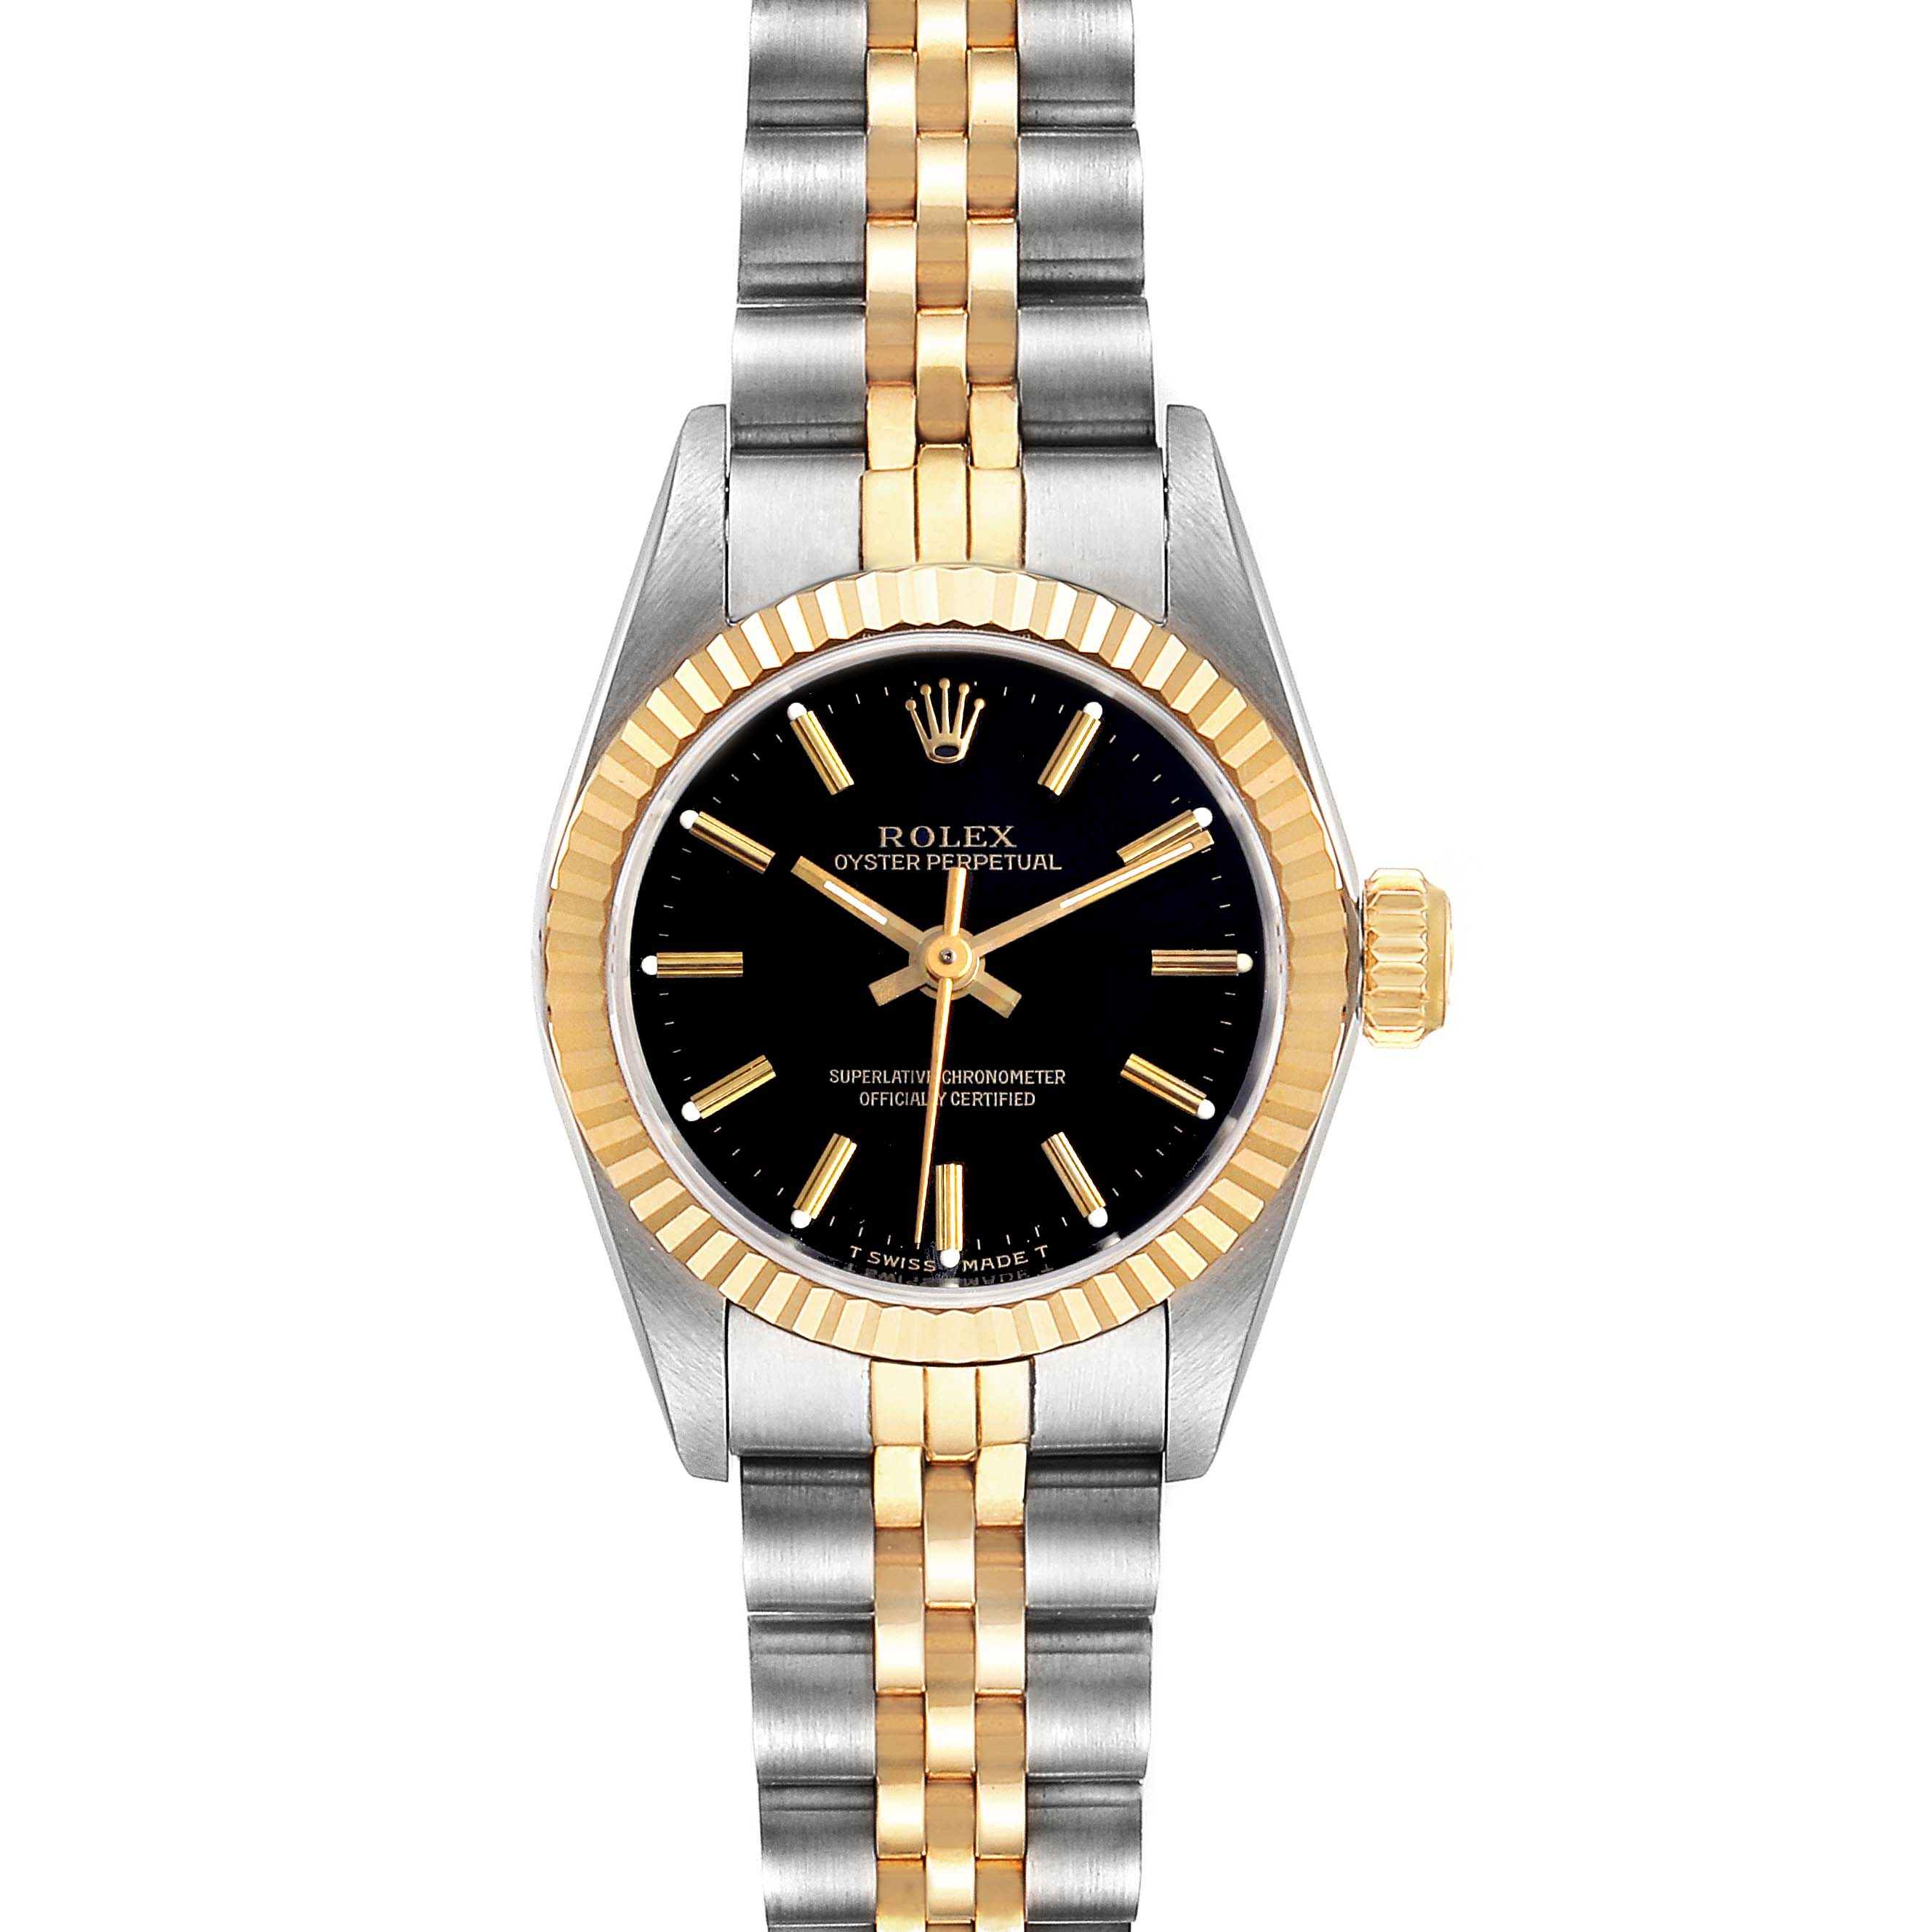 Photo of Rolex Oyster Perpetual Black Dial Steel Yellow Gold Ladies Watch 67193